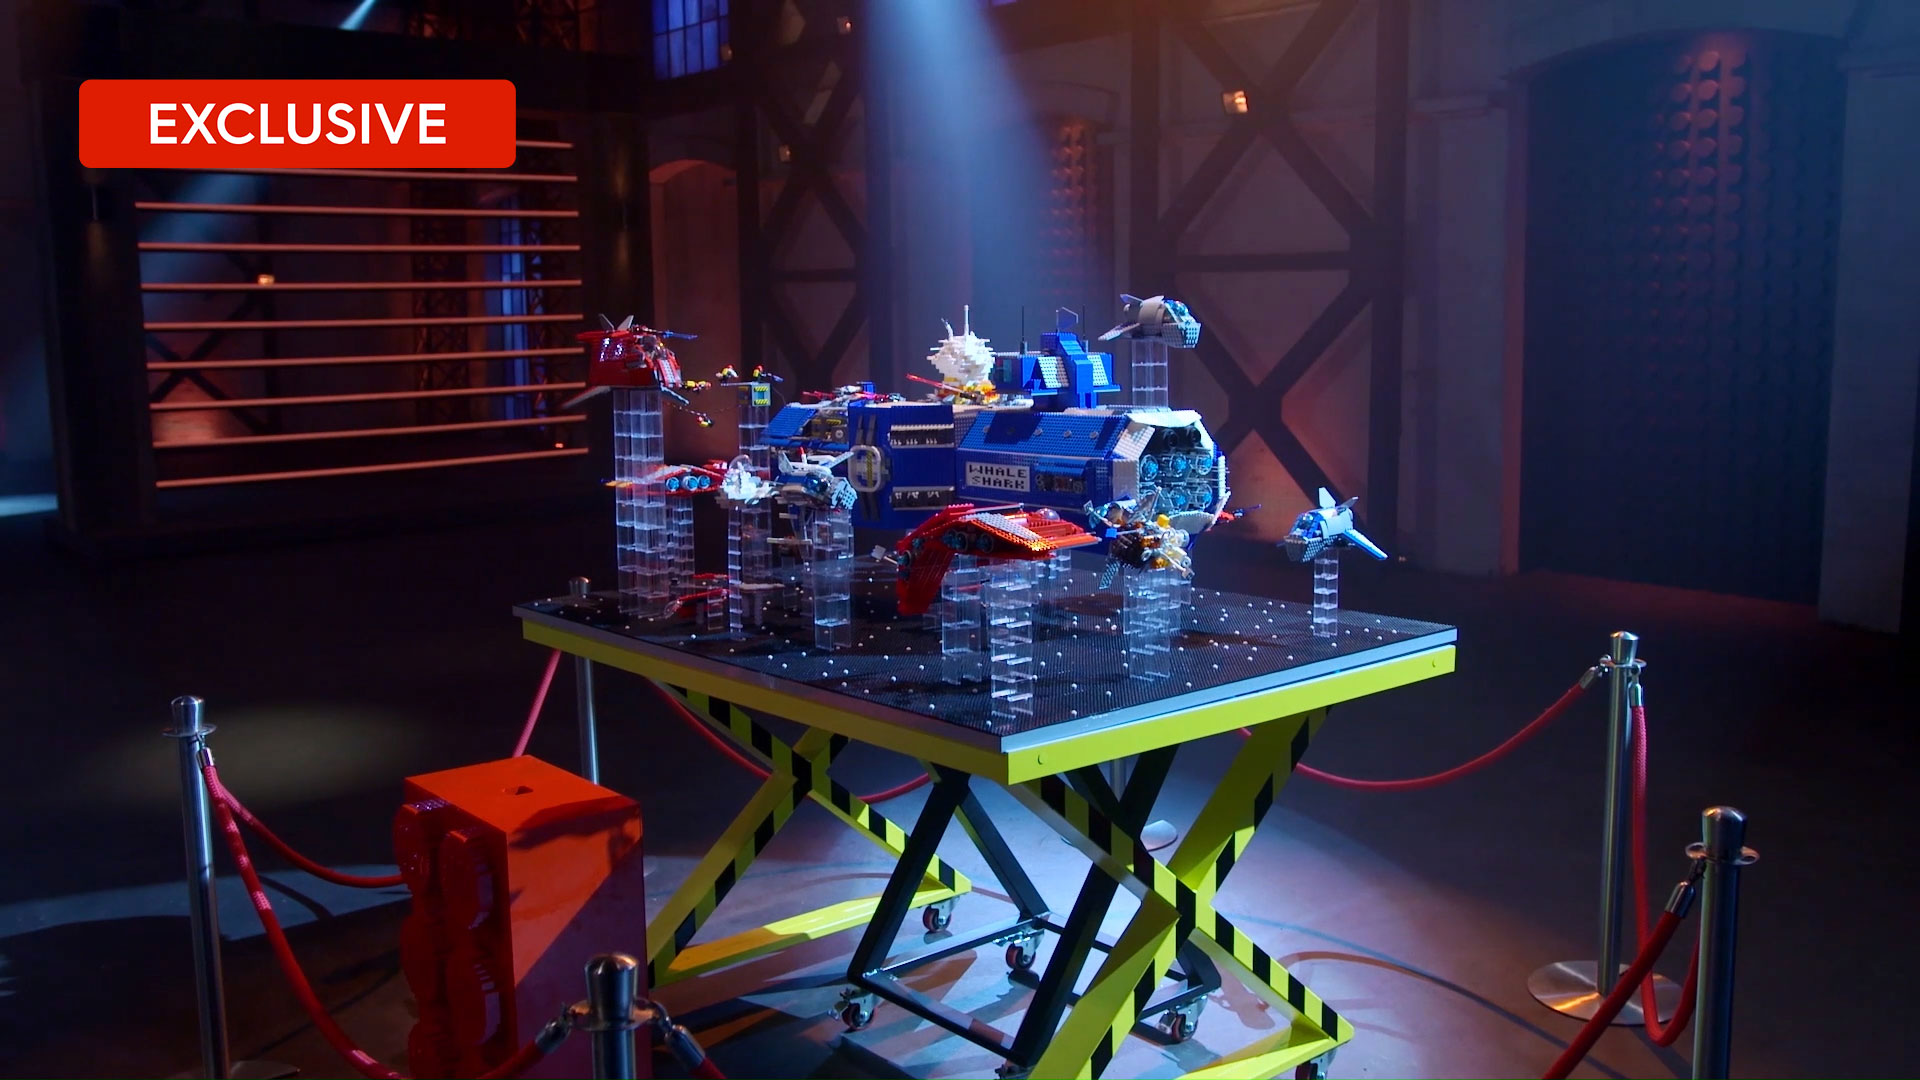 Extended LEGO Reveal: Jordan and Miller's spaceship